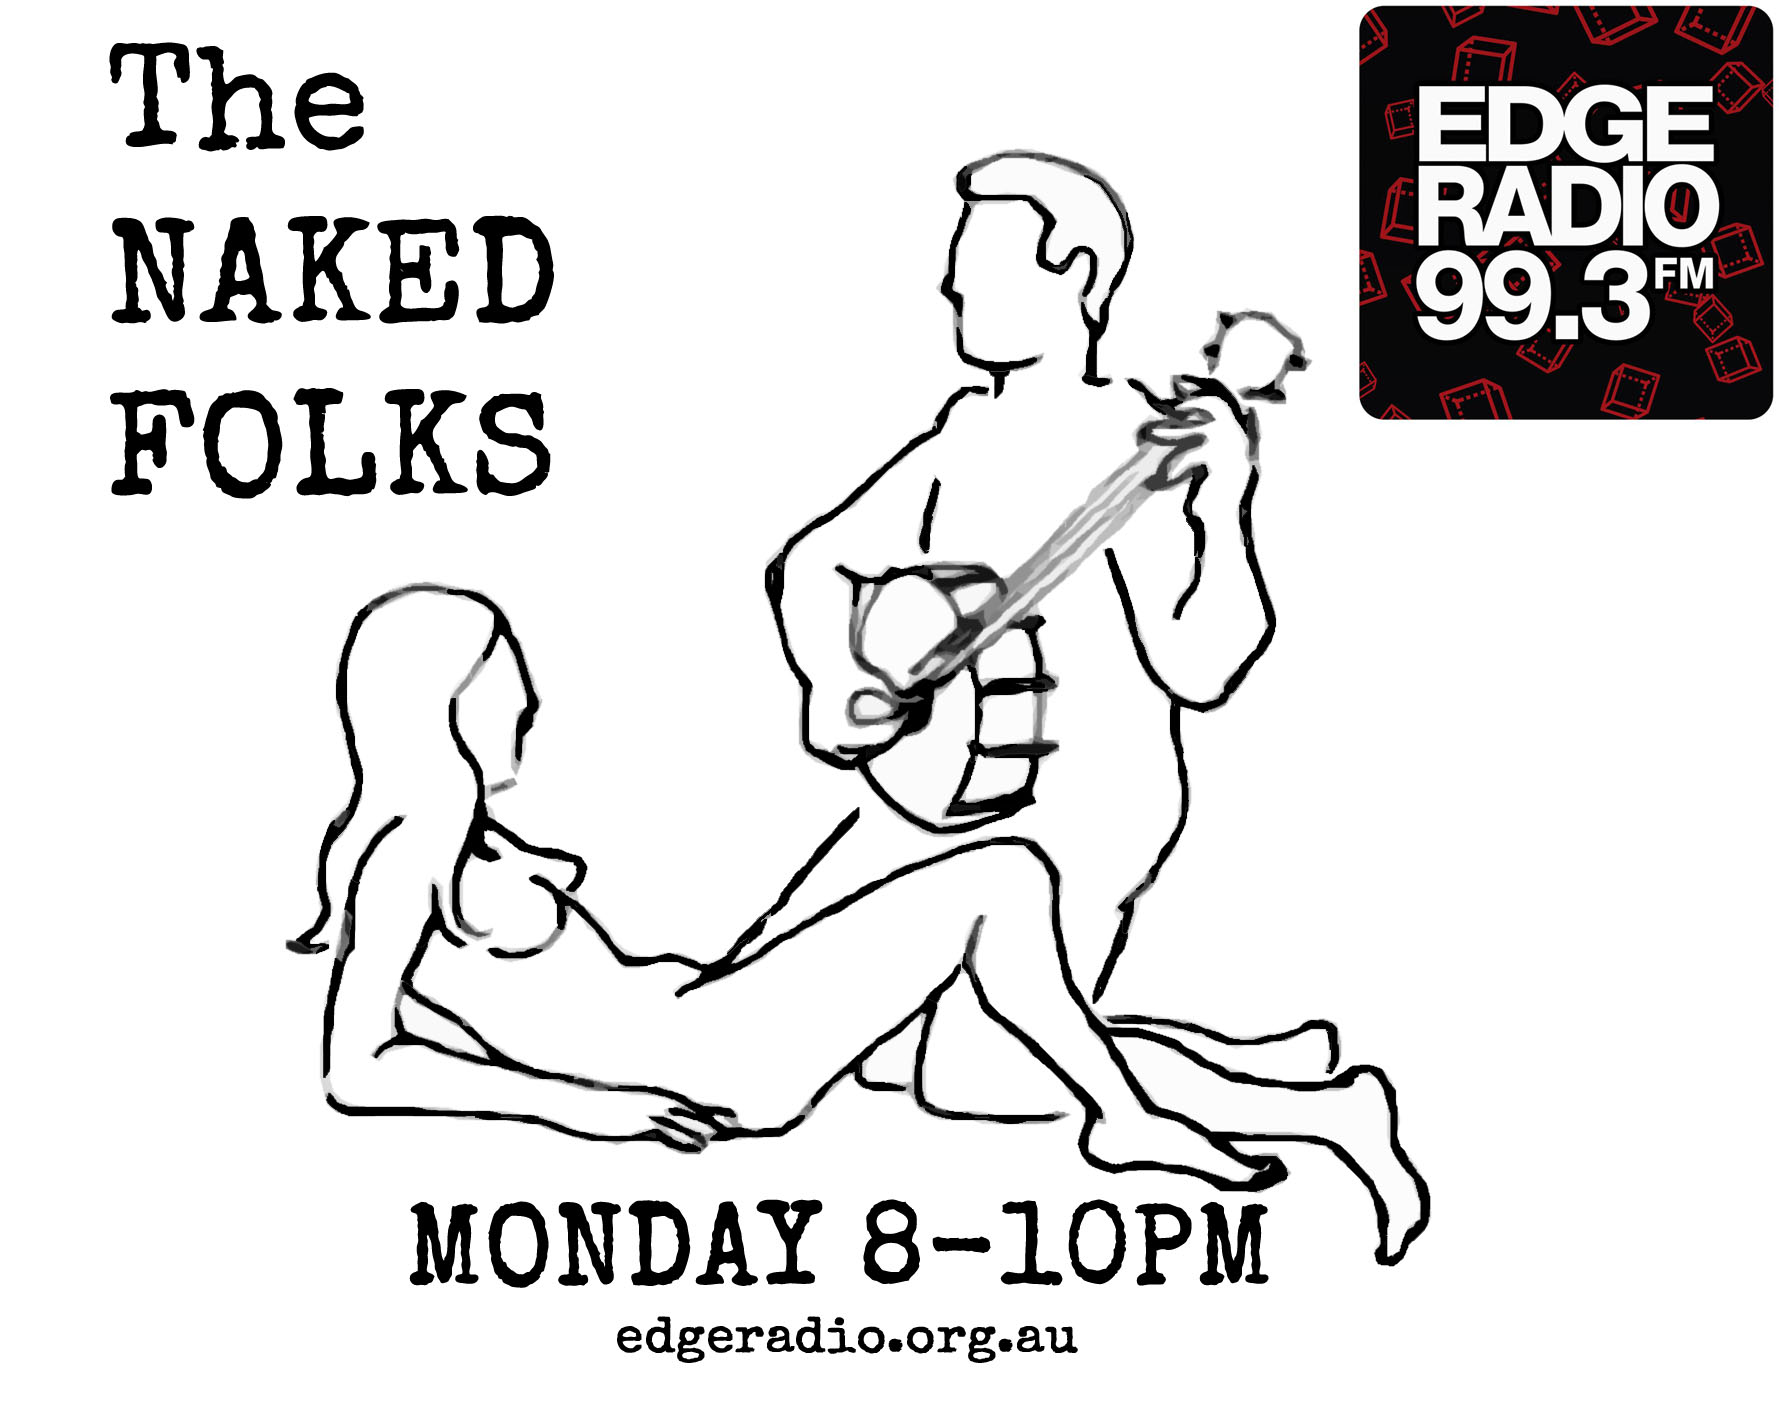 The Naked Folks with Carlos (CC Thornley) on Edge Radio 99.3FM